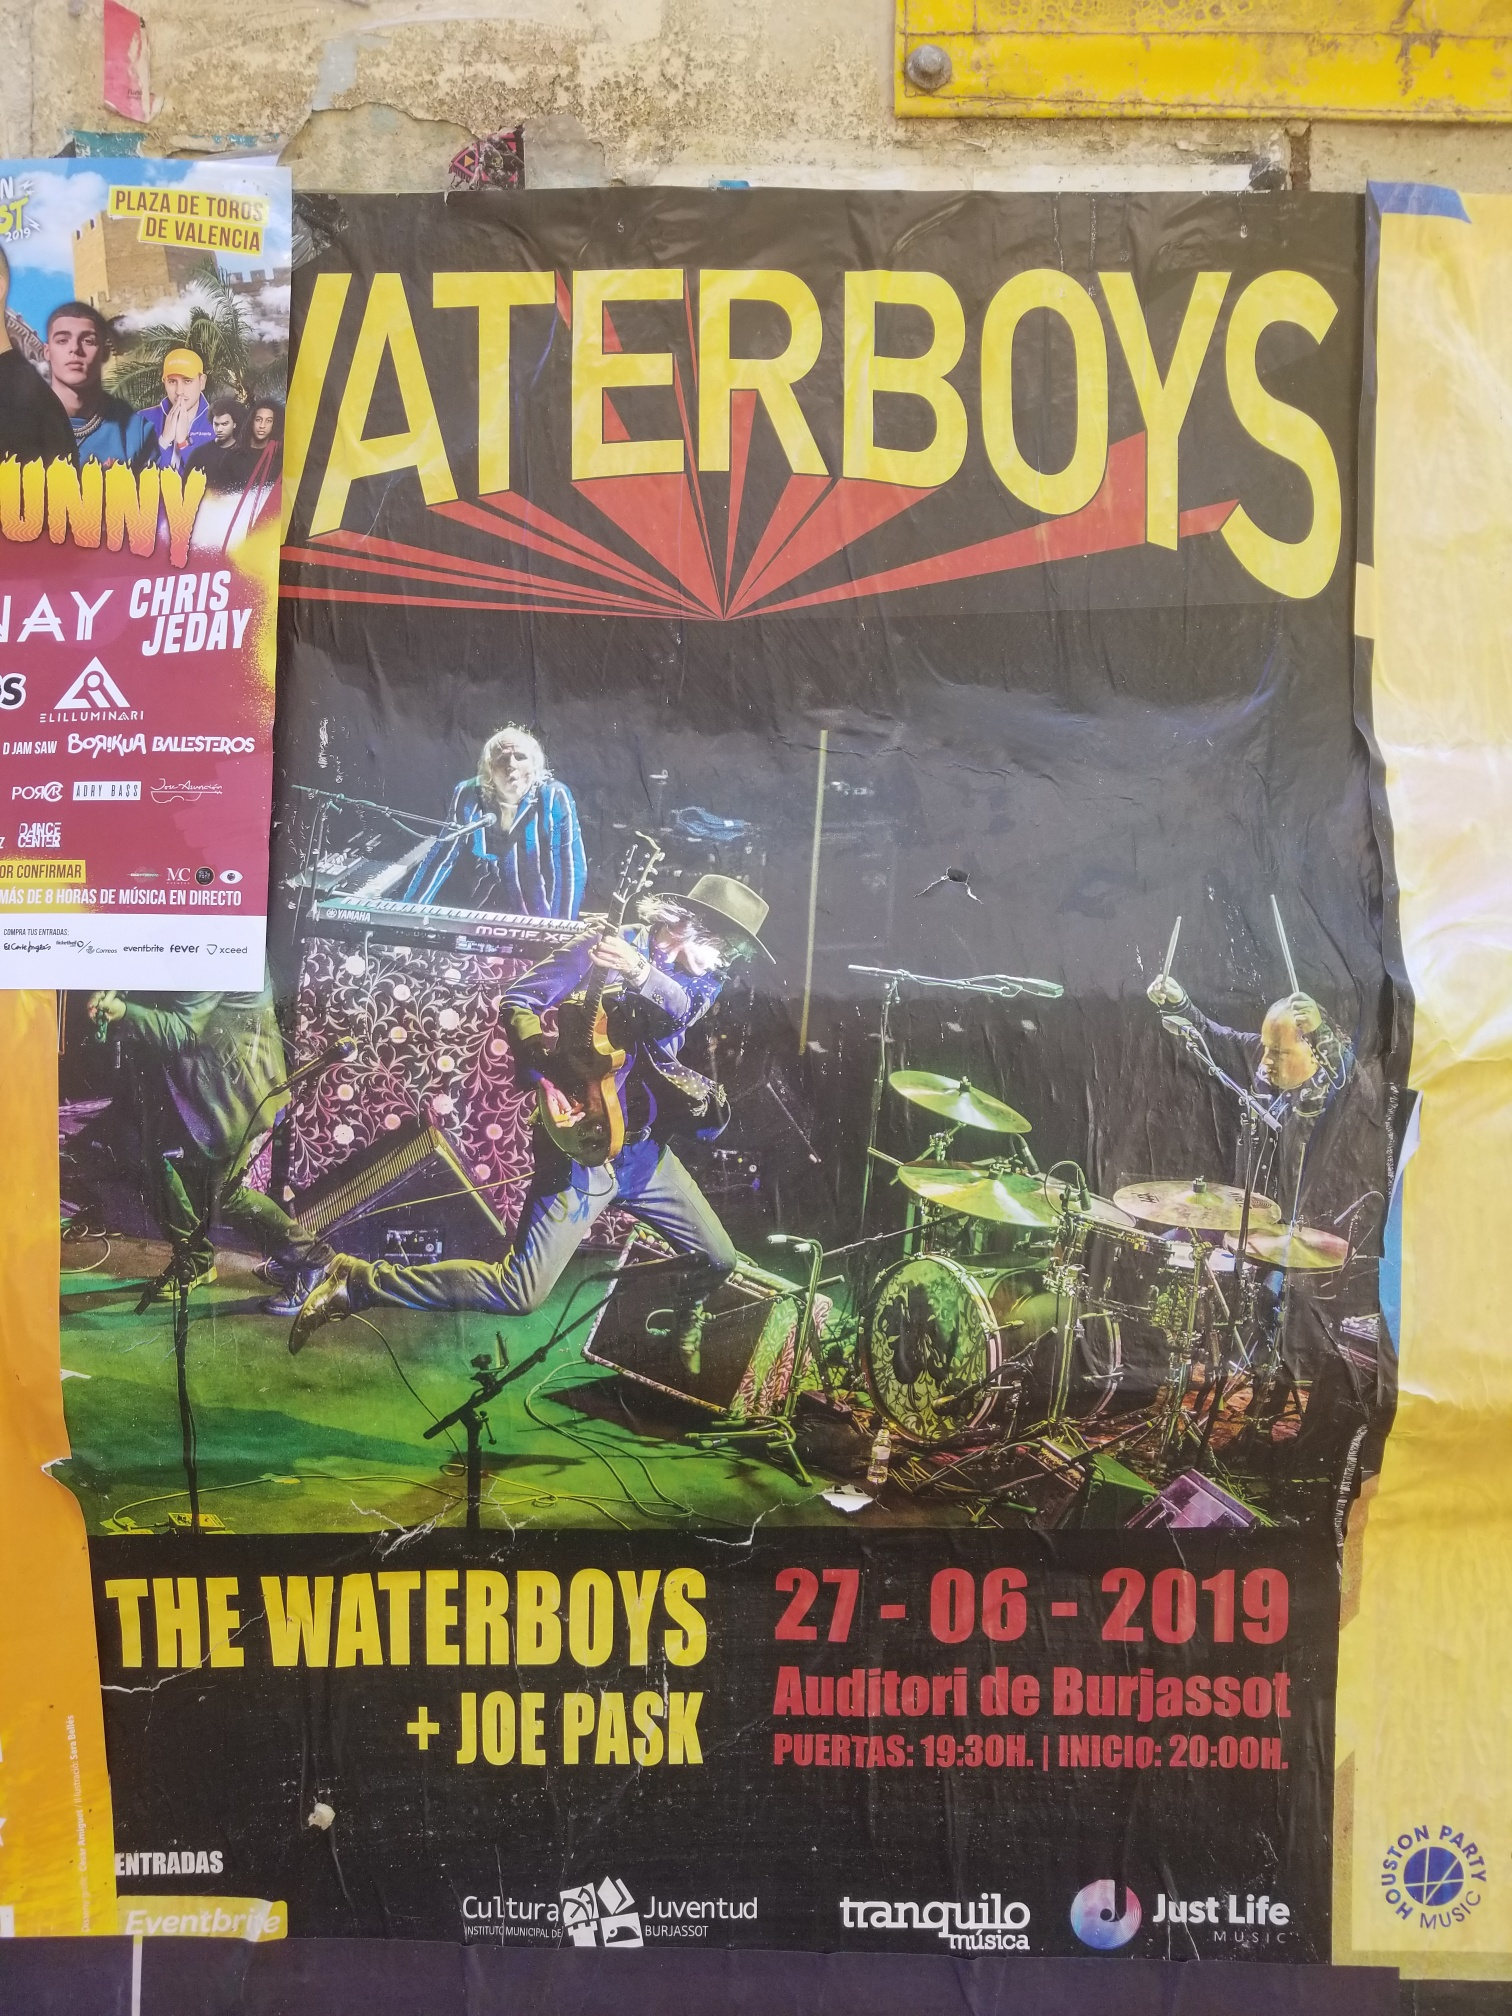 Gig review: THE WATERBOYS - Auditorio Burjassot, Valencia, Spain, 28 June 2019